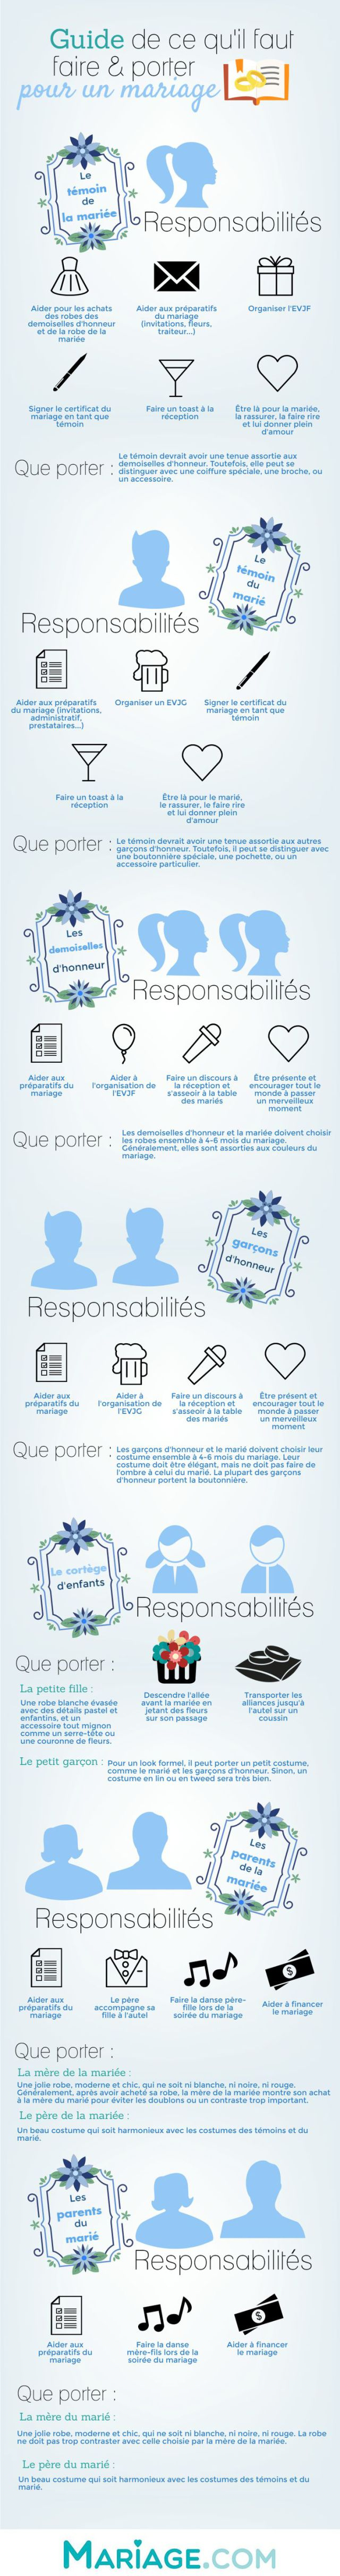 Citation  guide-du-role-a-un-mariage